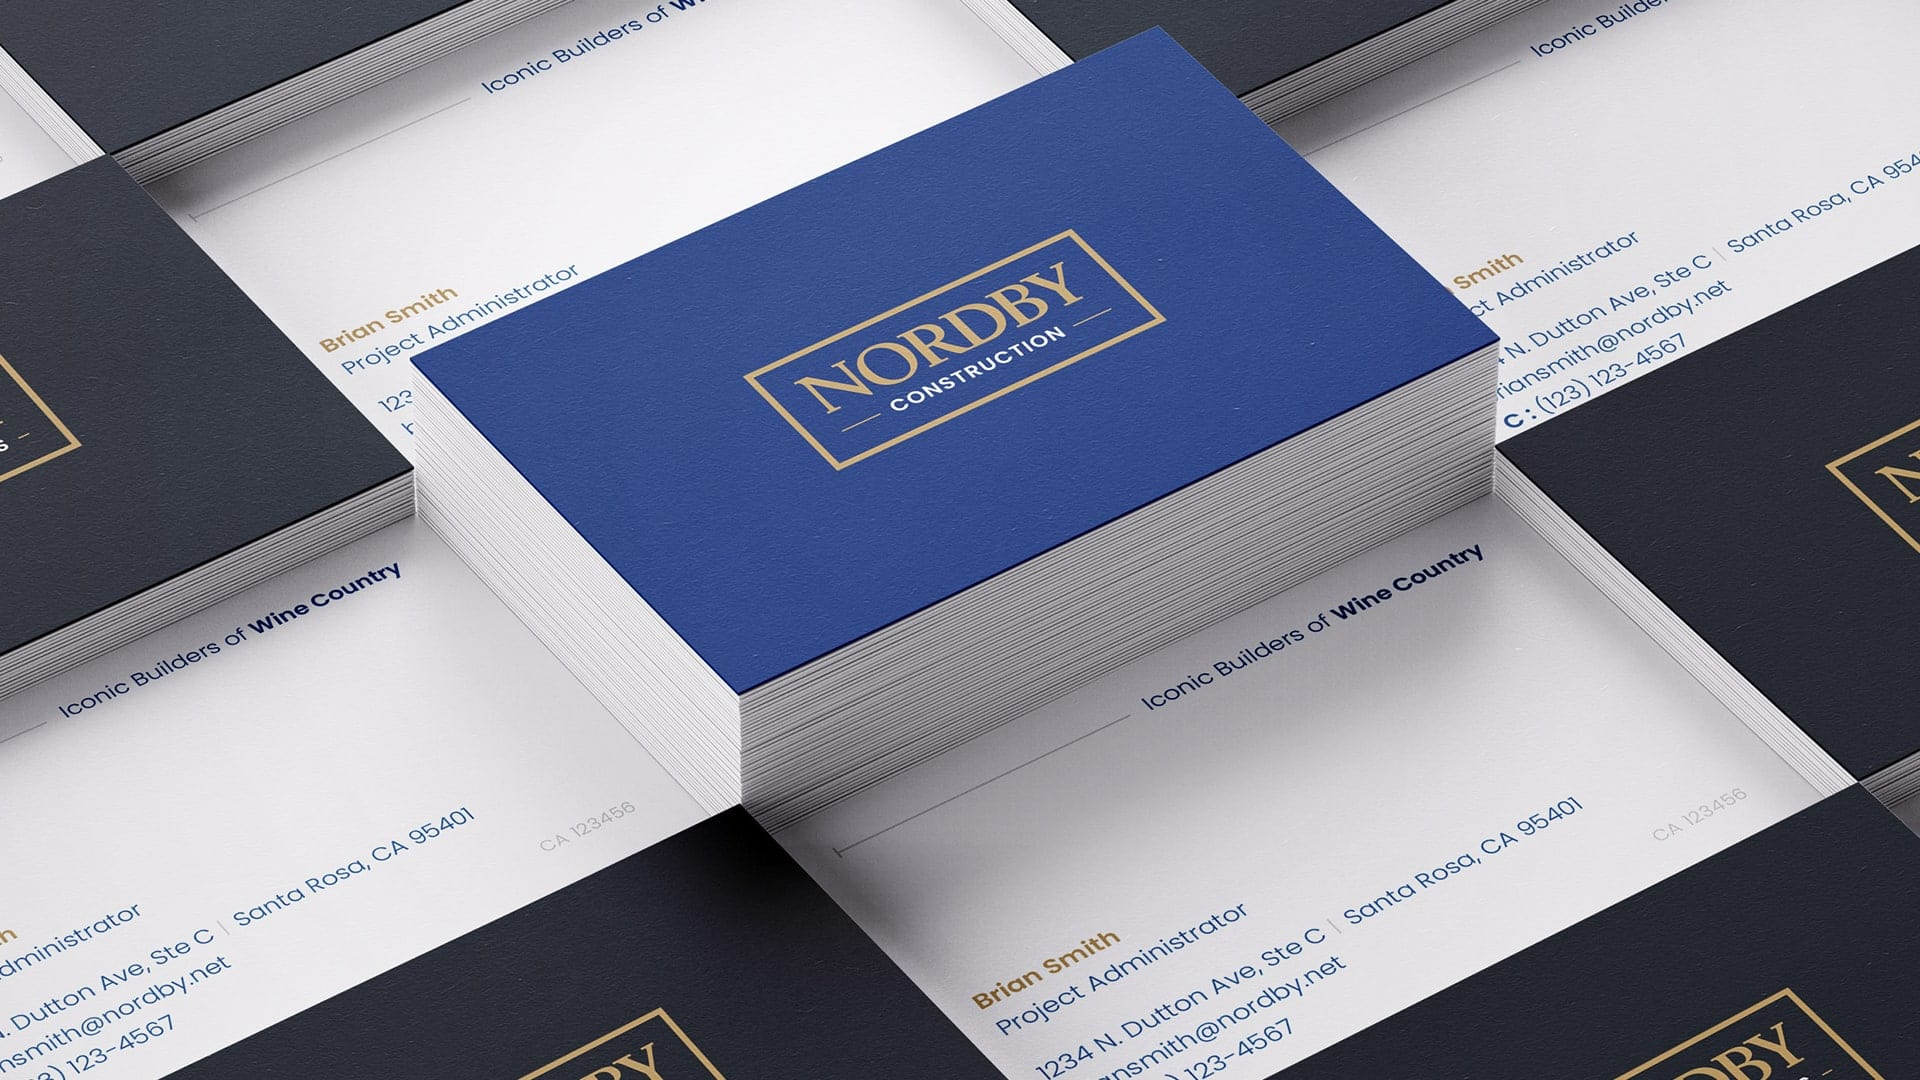 Nordby Construction business cards design